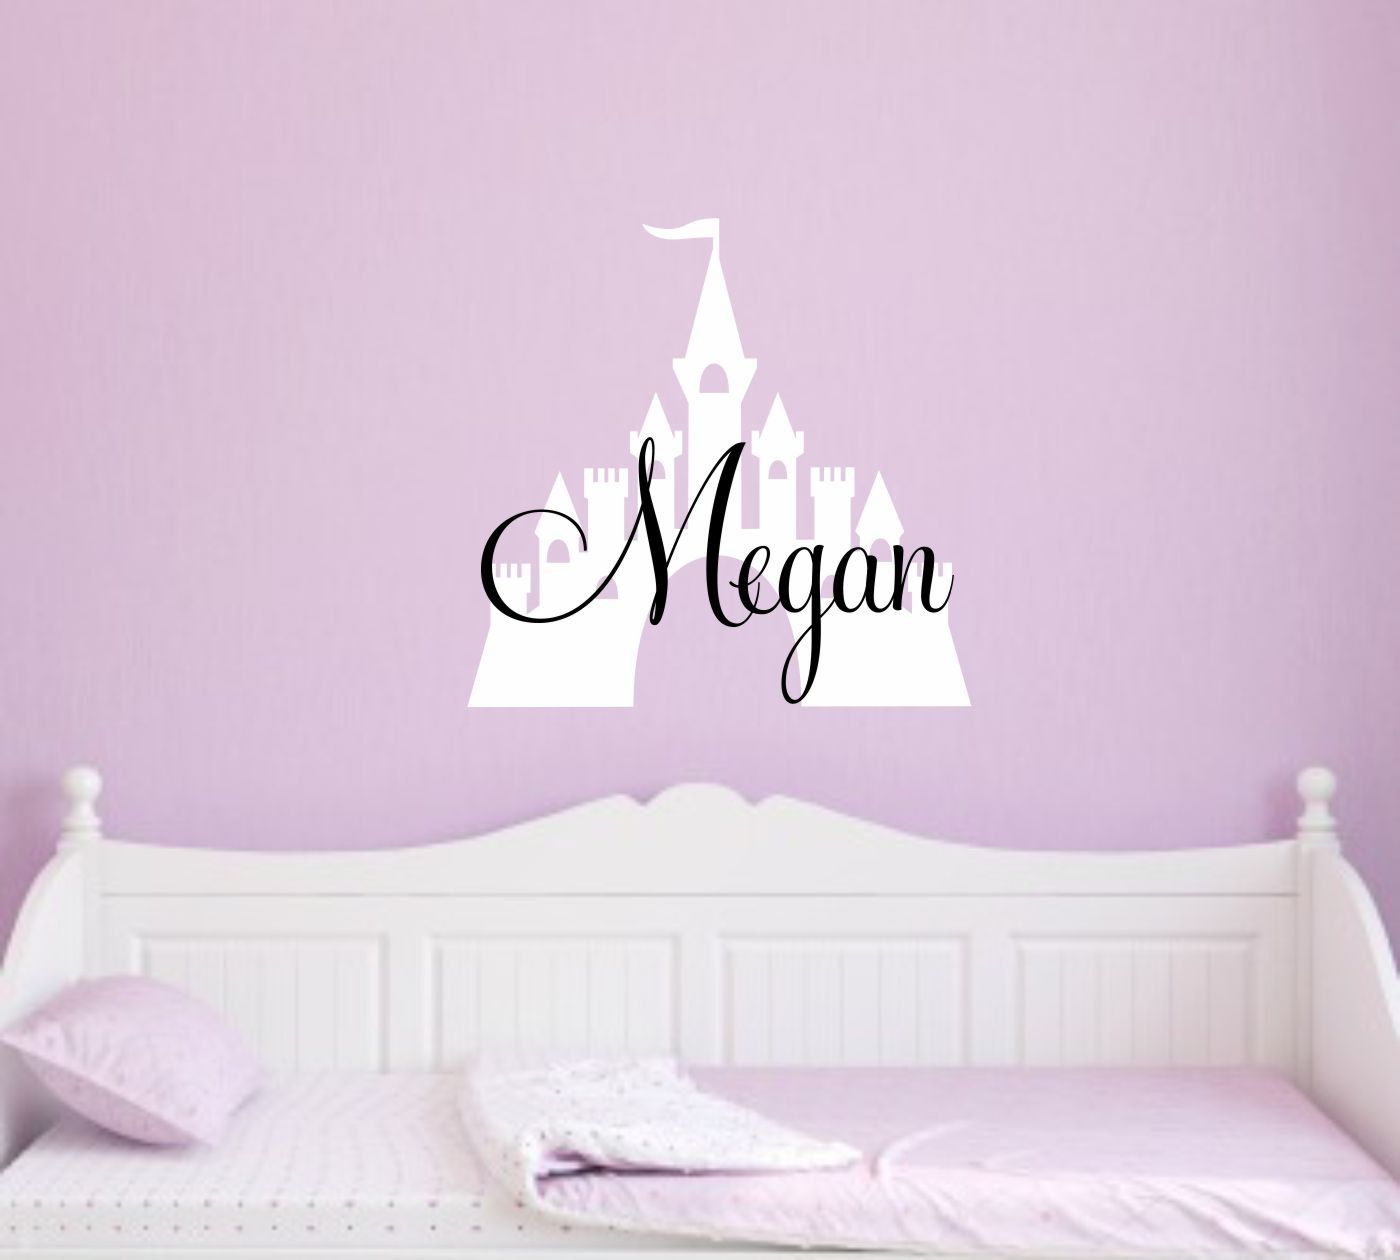 Princess Wall Decal Castle Wall Decal Girl Bedroom Wall Decal Castle Decal Princess Vinyl Decal Princess & Princess Wall Decal Castle Wall Decal Girl Bedroom Wall Decal Castle ...